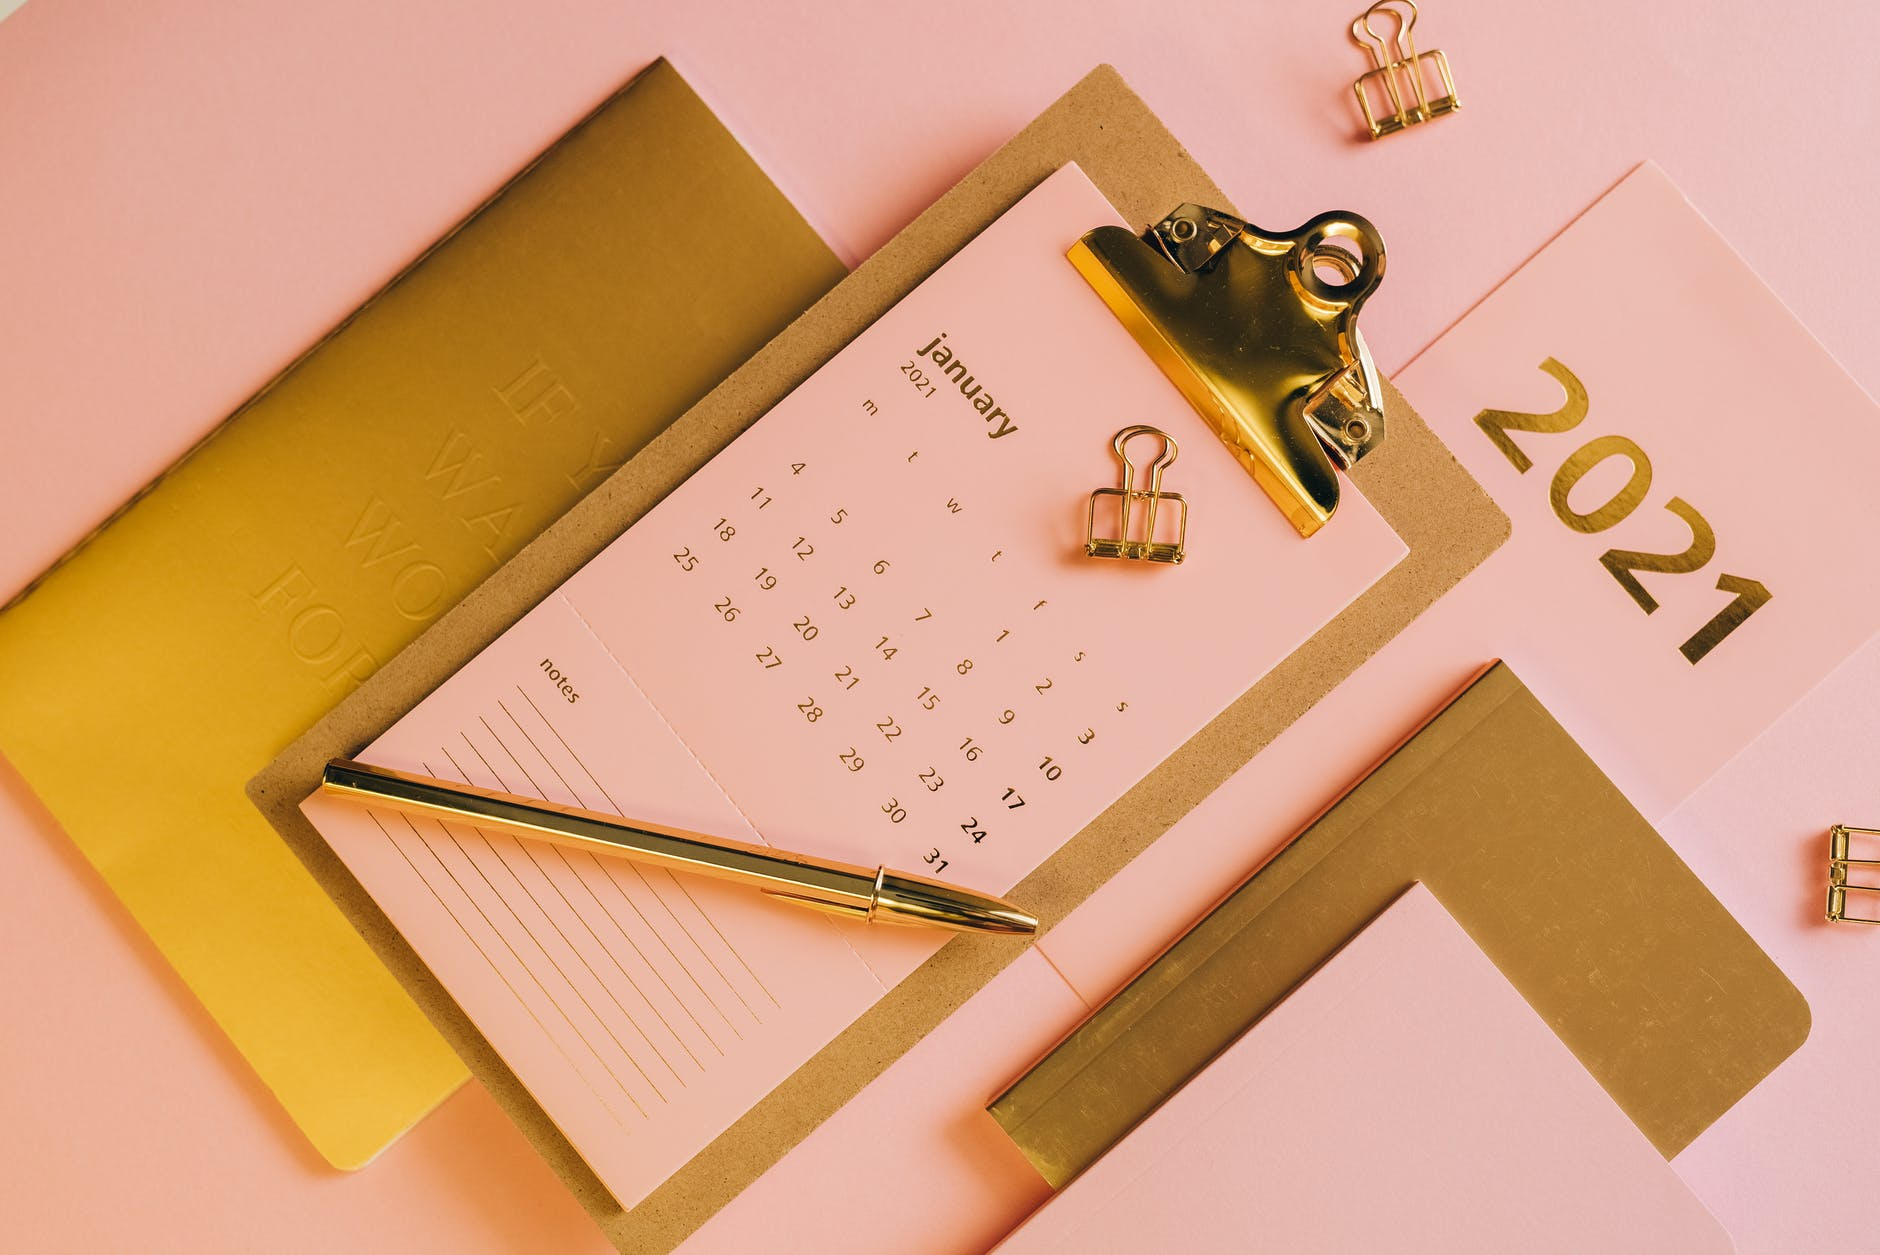 minimalistic composition with stationery - doctoral program calendar